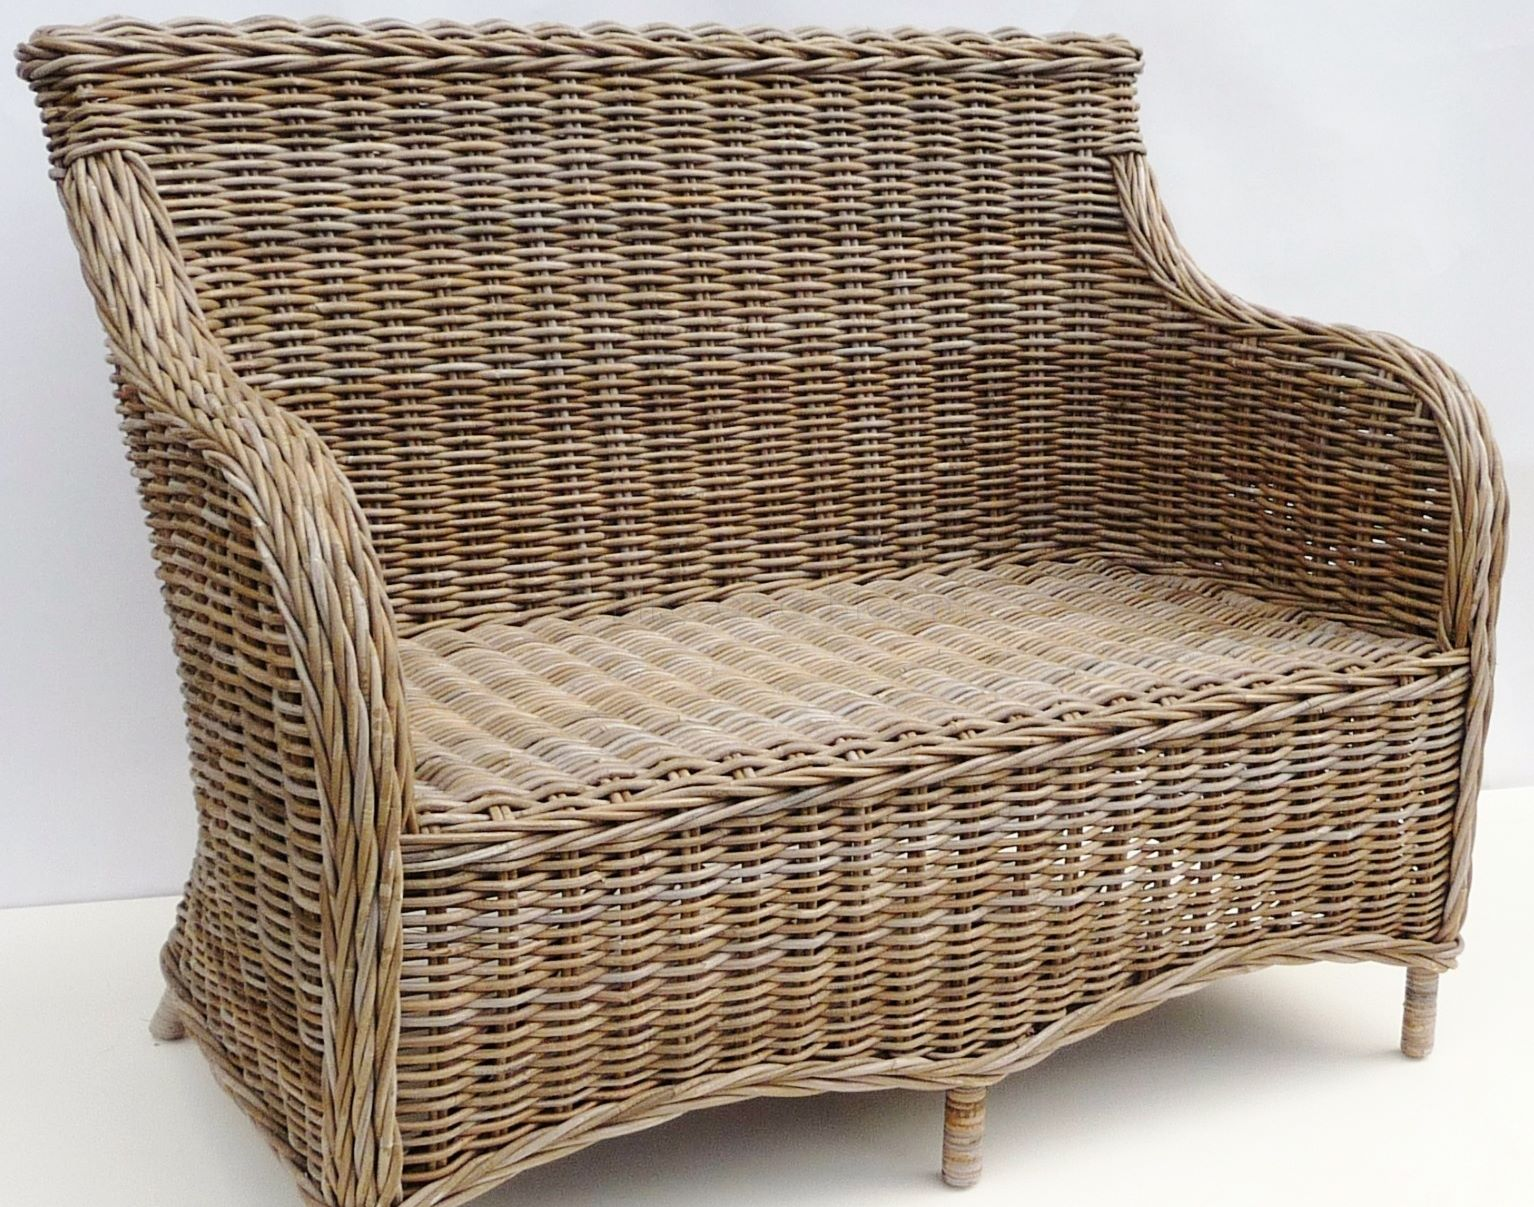 Grey Rattan Sofa 2 Seater Bliss And Bloom